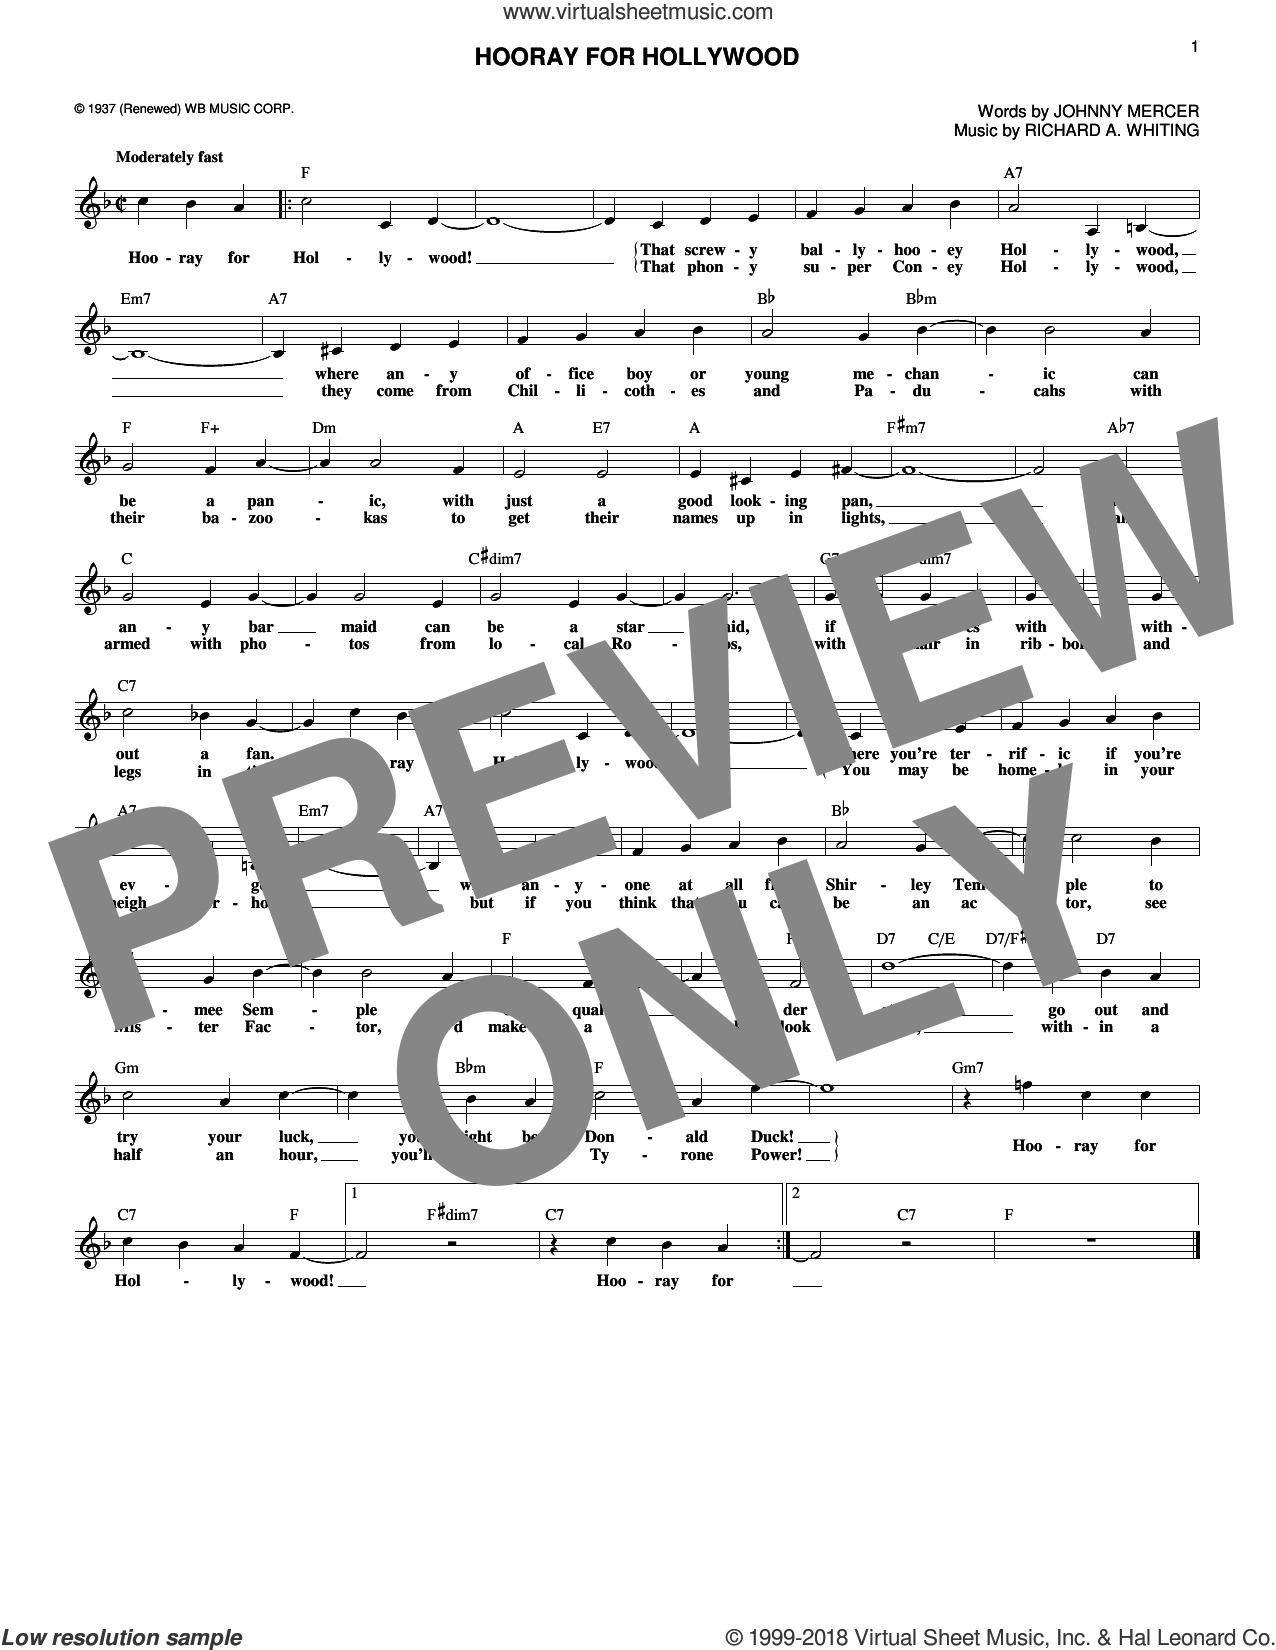 Hooray For Hollywood sheet music for voice and other instruments (fake book) by Johnny Mercer and Richard A. Whiting, intermediate skill level